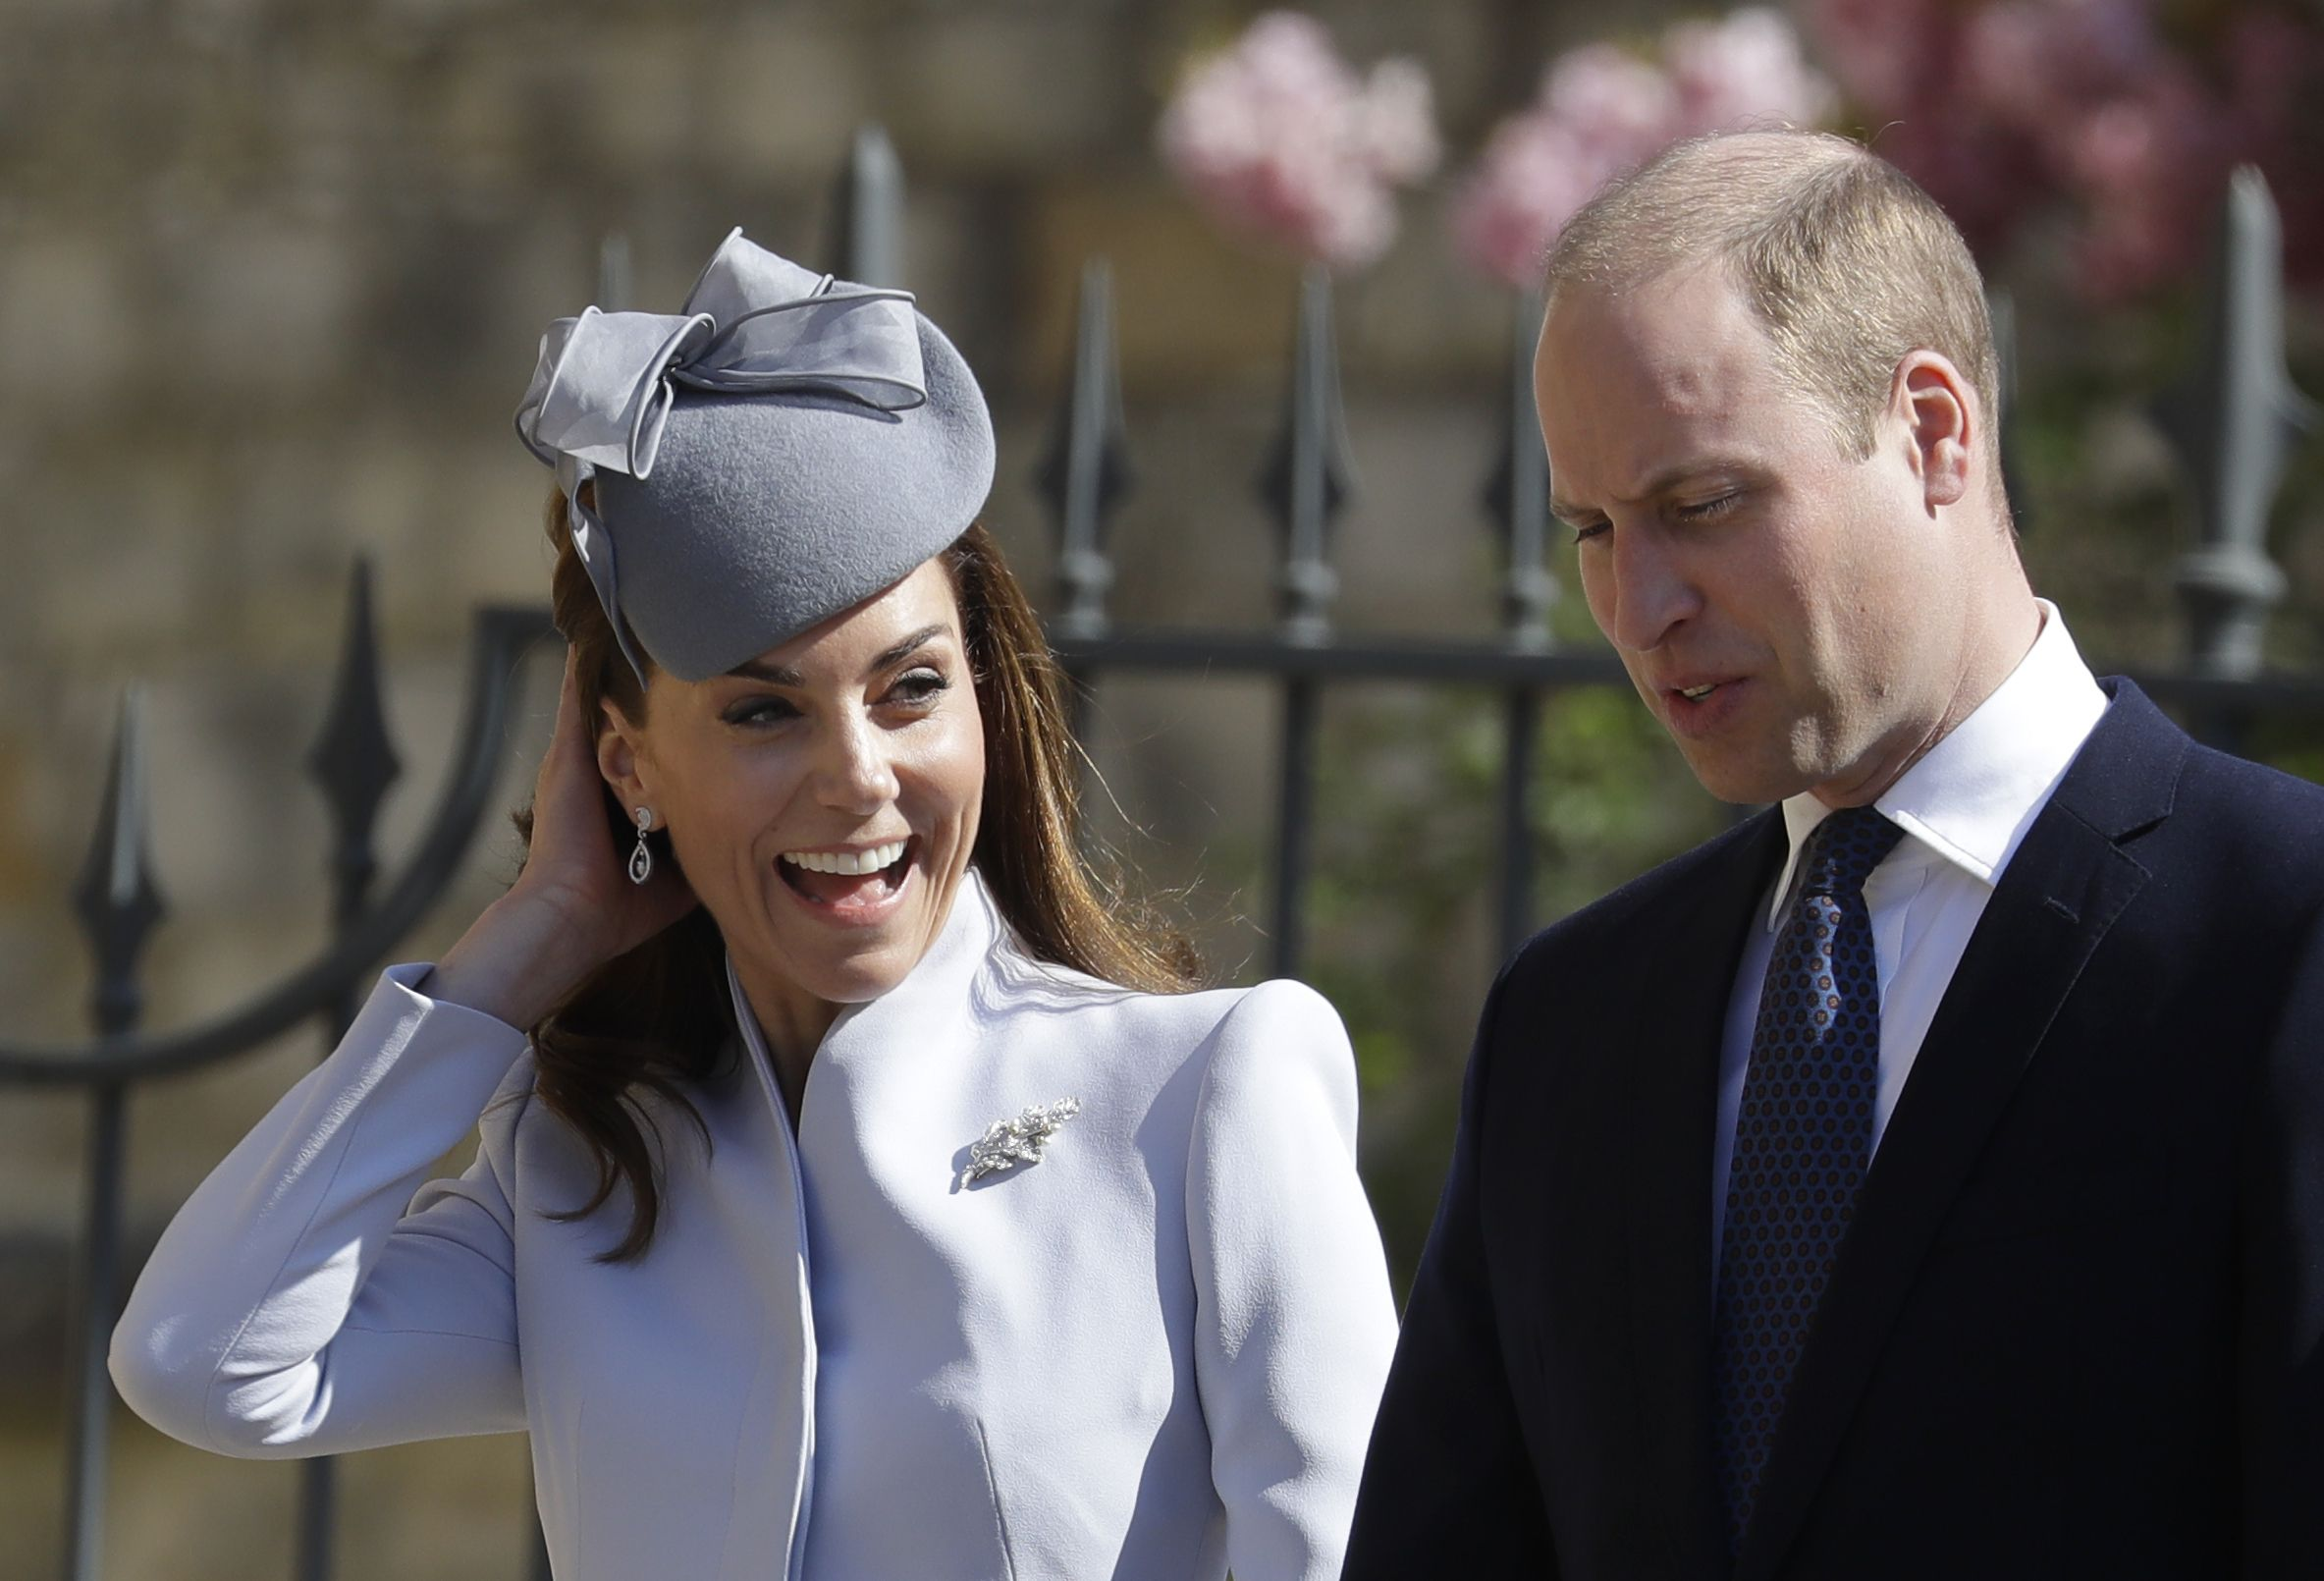 Kate Middleton's Easter Outfit Looks Just Like Her Easter Look from 2014